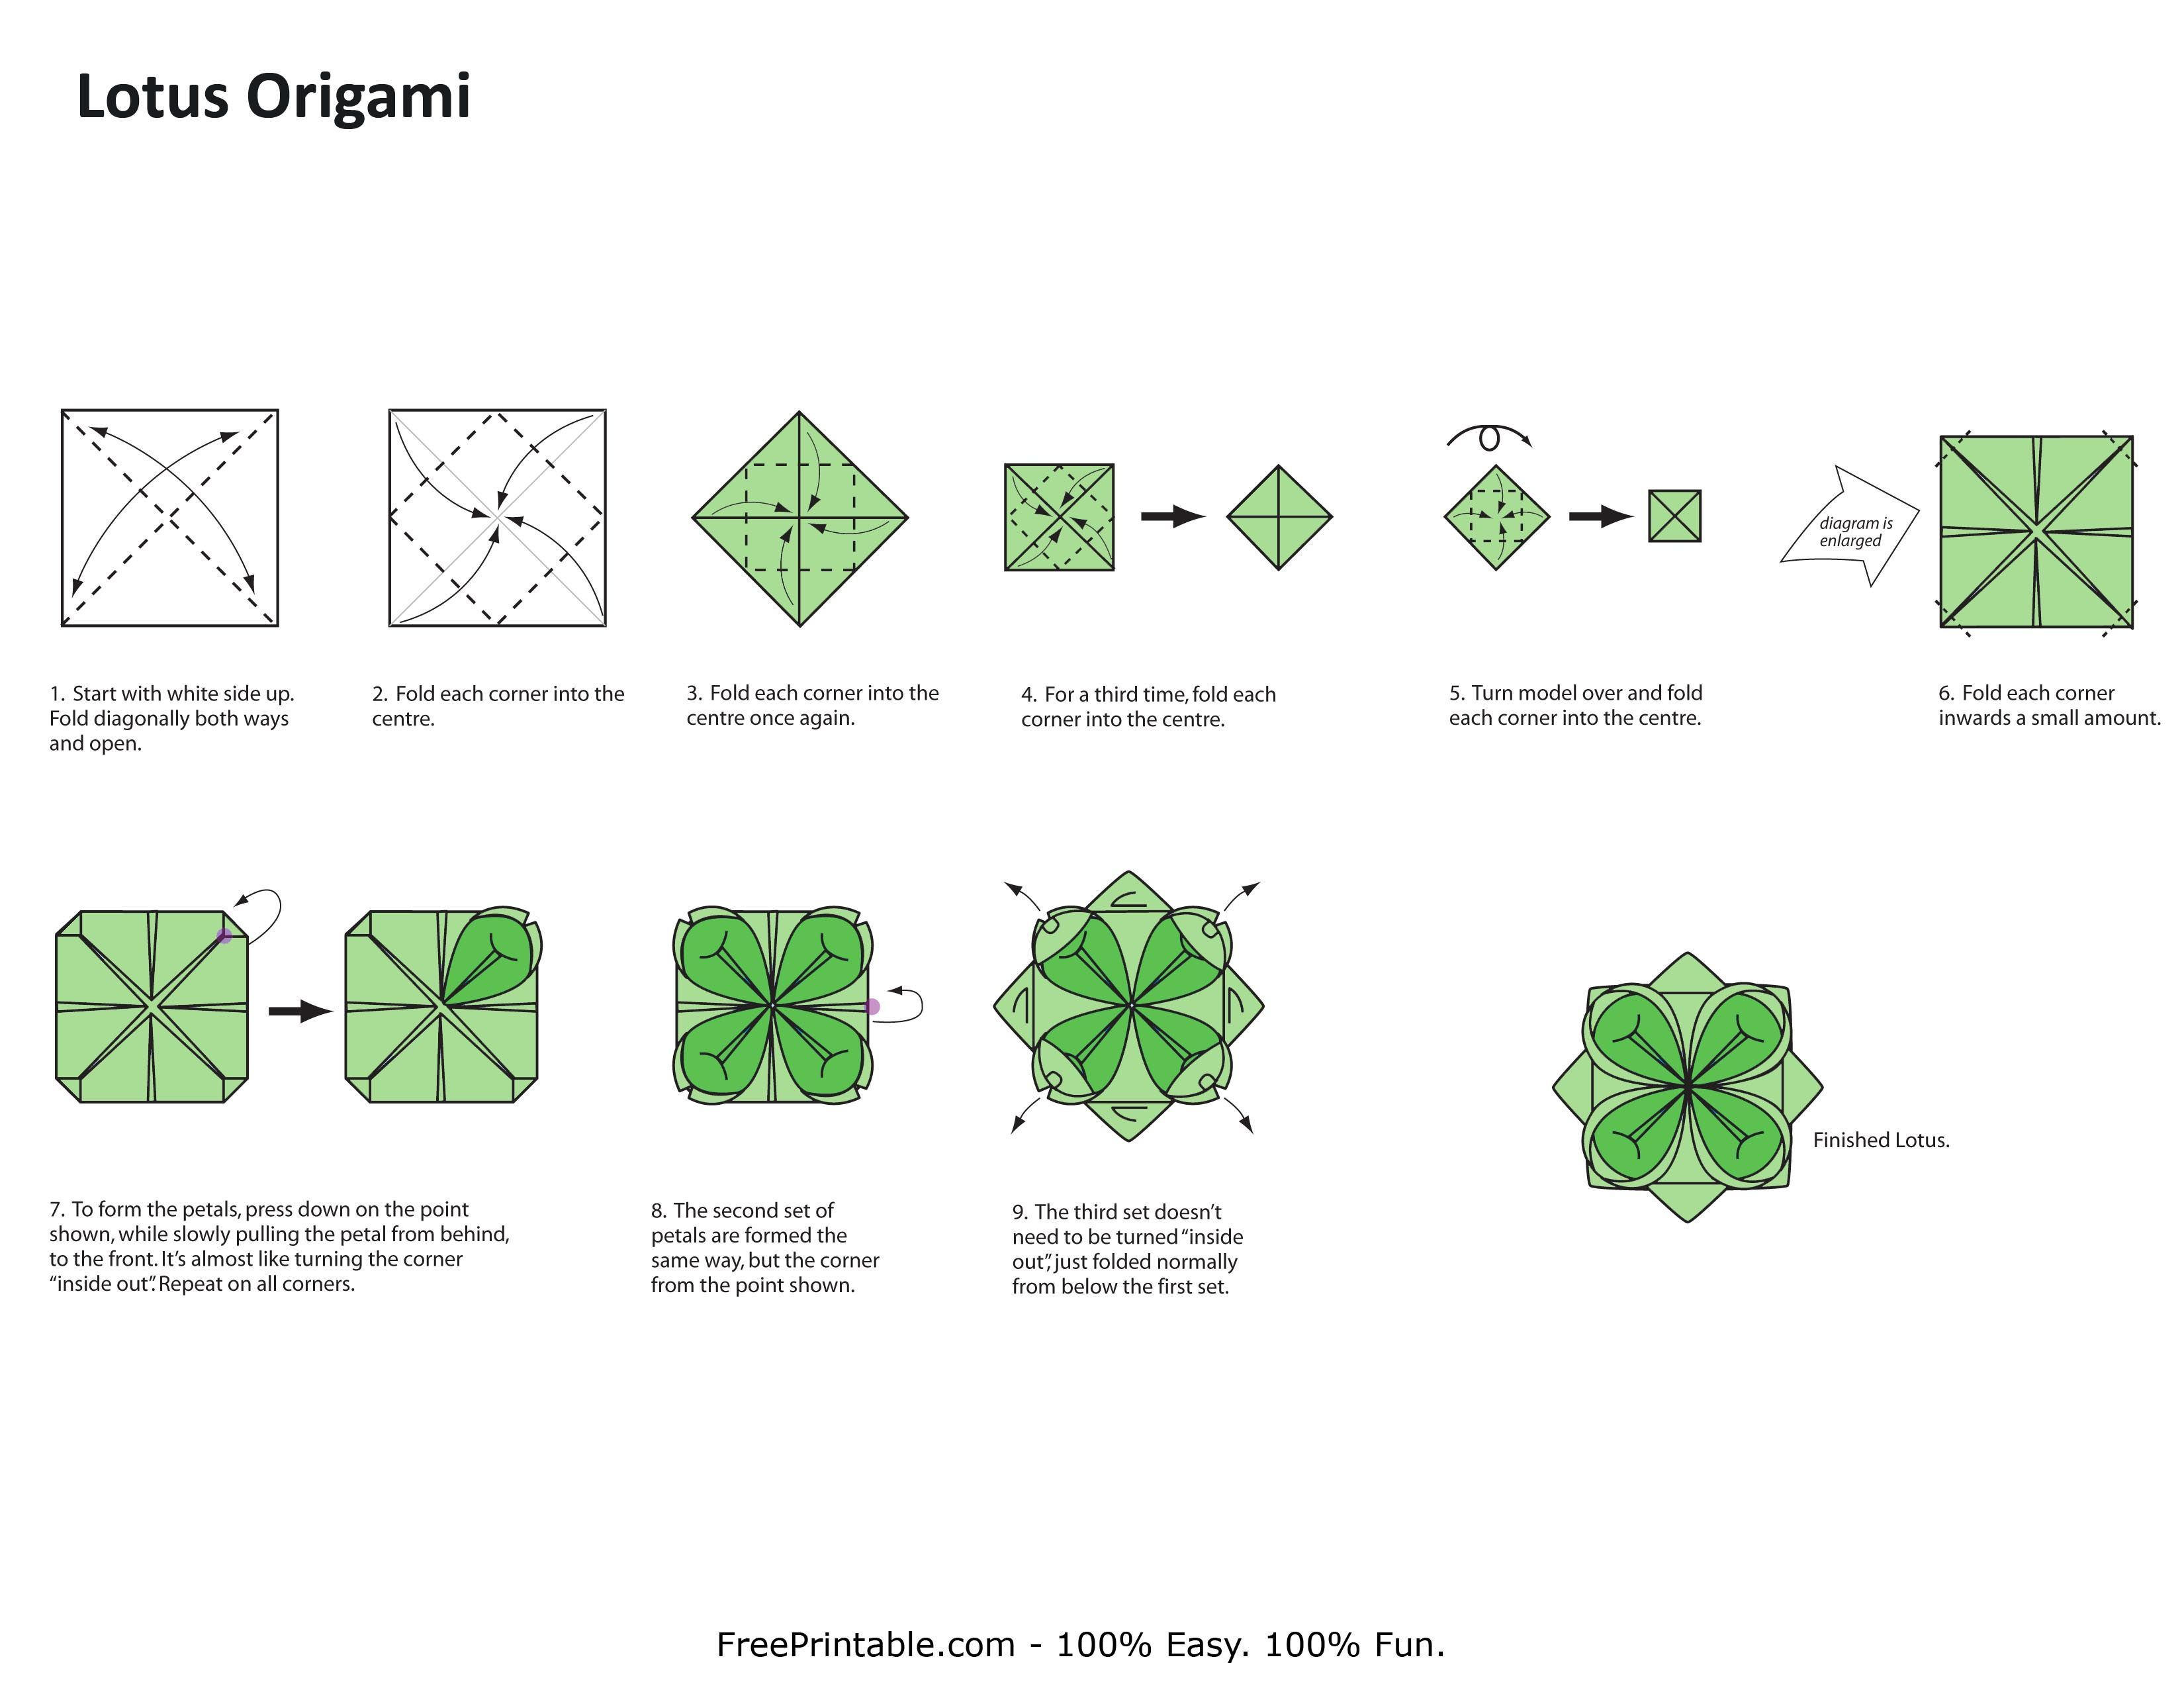 origami flower instruction diagram citroen c4 boot wiring lotus taiwan flowers paper crafts step by instructions